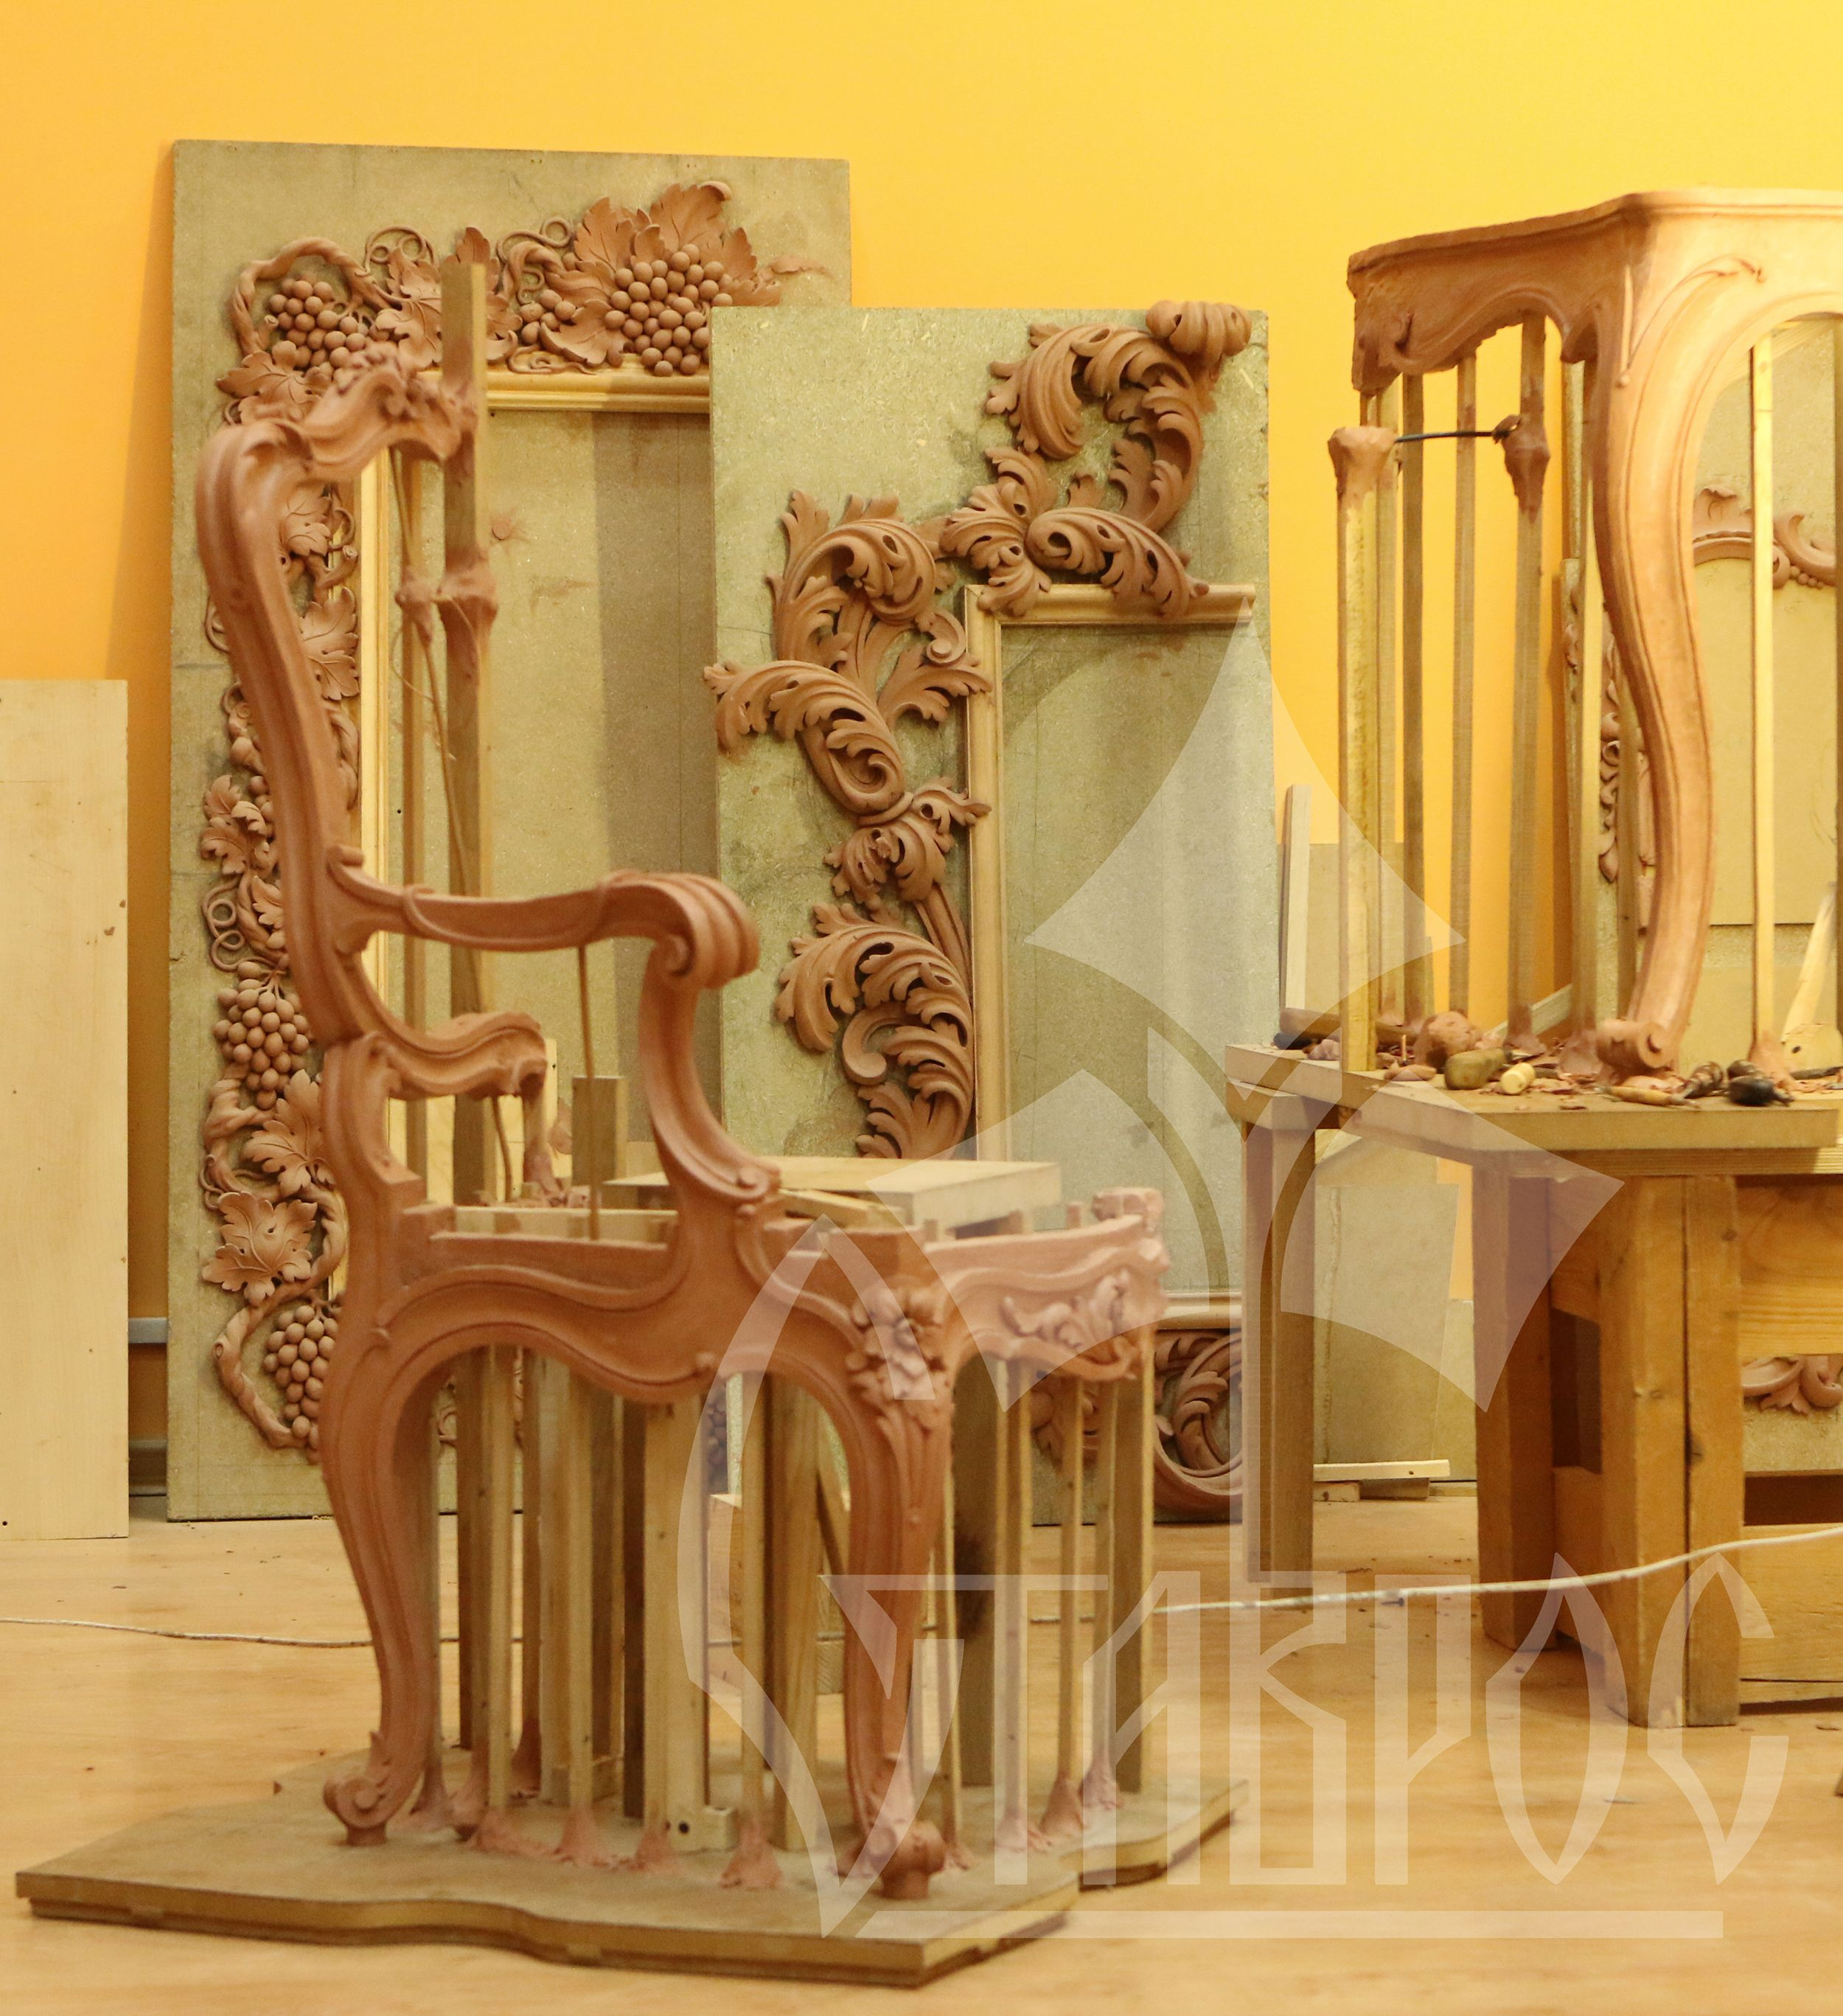 Free images wood window palace furniture altar wooden yoga